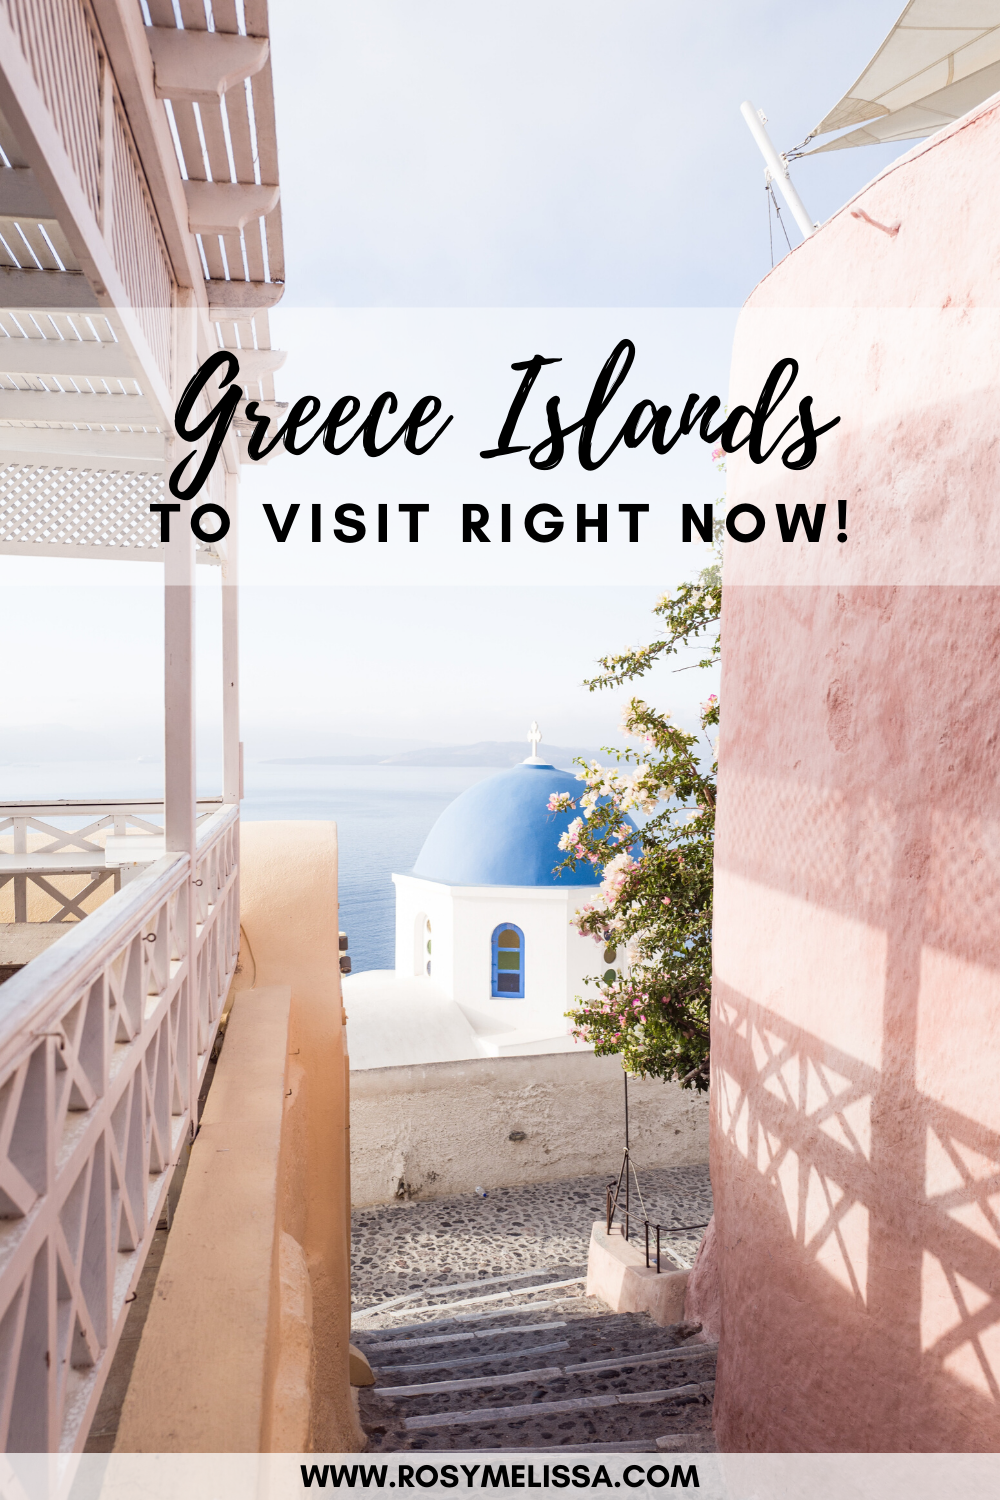 islands to visit, greece islands to visit next, where to go in greece, greece inspiration, places to visit in greece